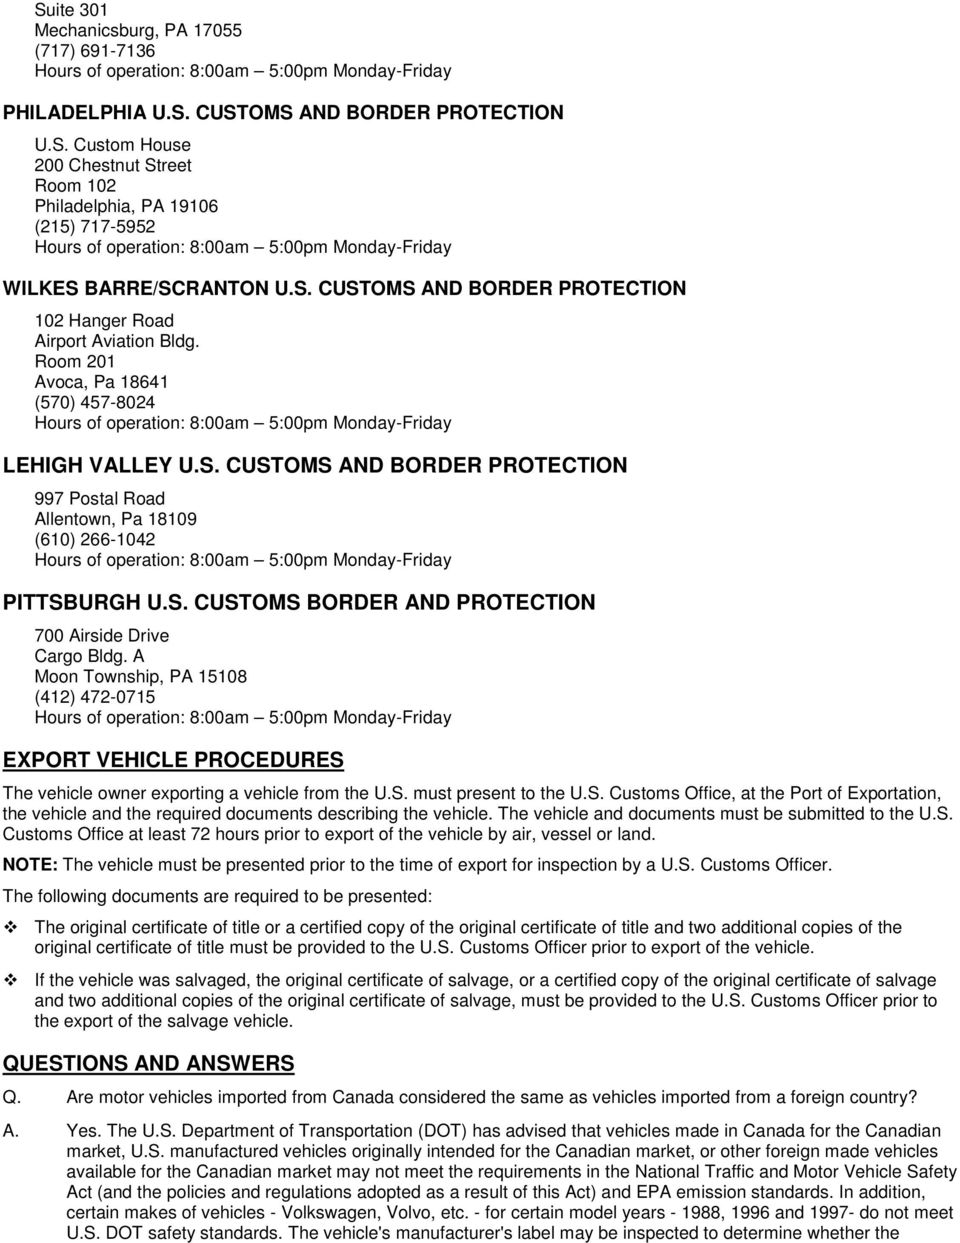 S. CUSTOMS BORDER AND PROTECTION 700 Airside Drive Cargo Bldg. A Moon Township, PA 15108 (412) 472-0715 EXPORT VEHICLE PROCEDURES The vehicle owner exporting a vehicle from the U.S. must present to the U.